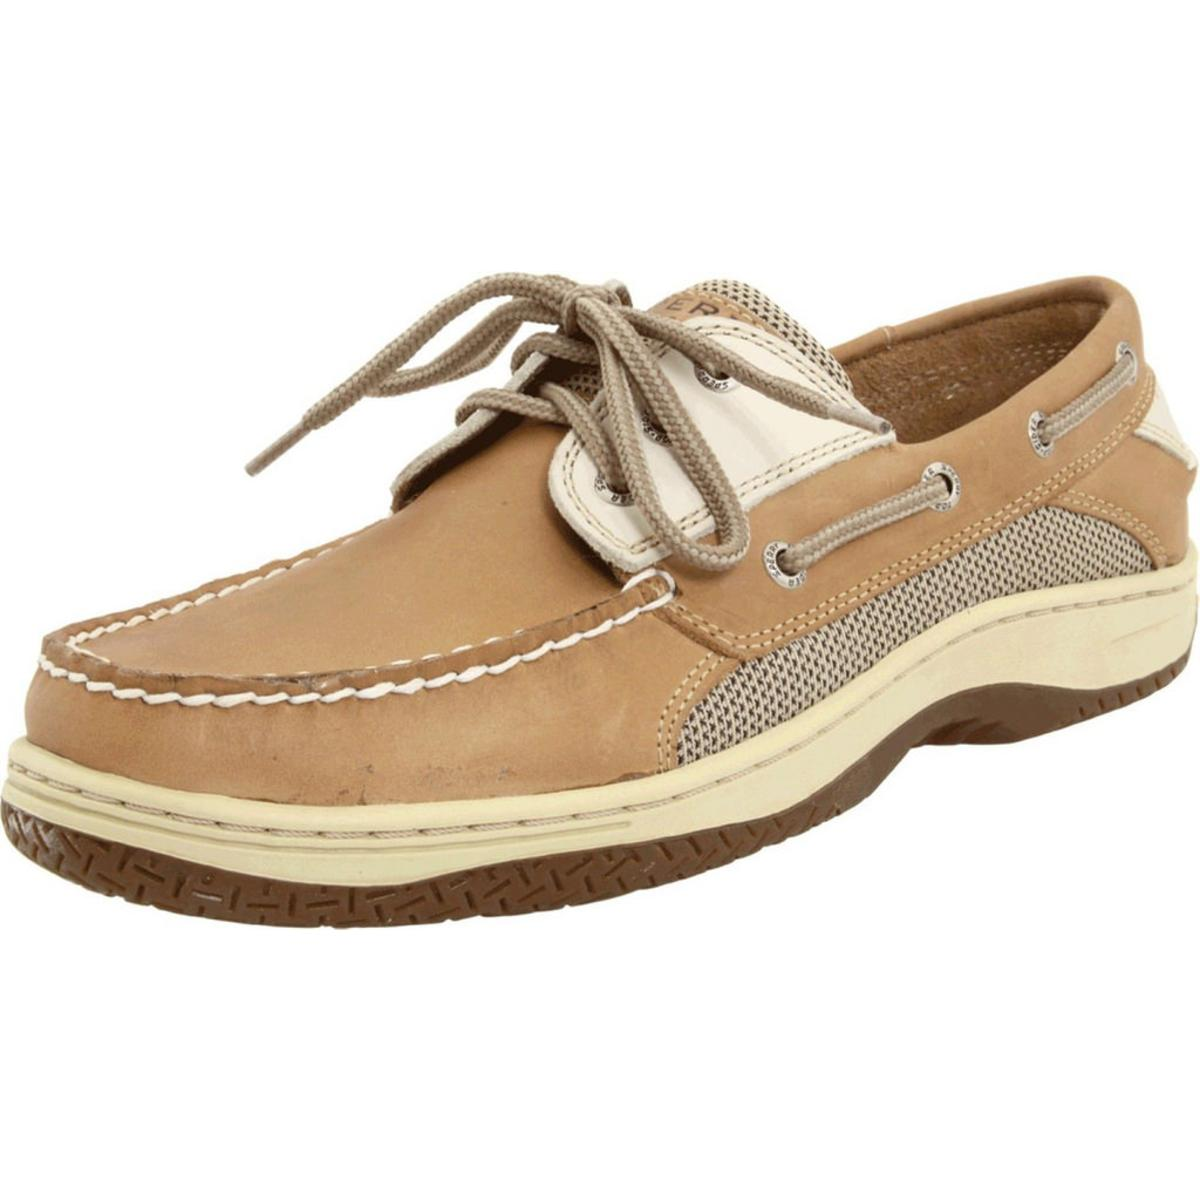 Sperry Top-Sider Billfish 3 eye Mens Tan/beige Loafers